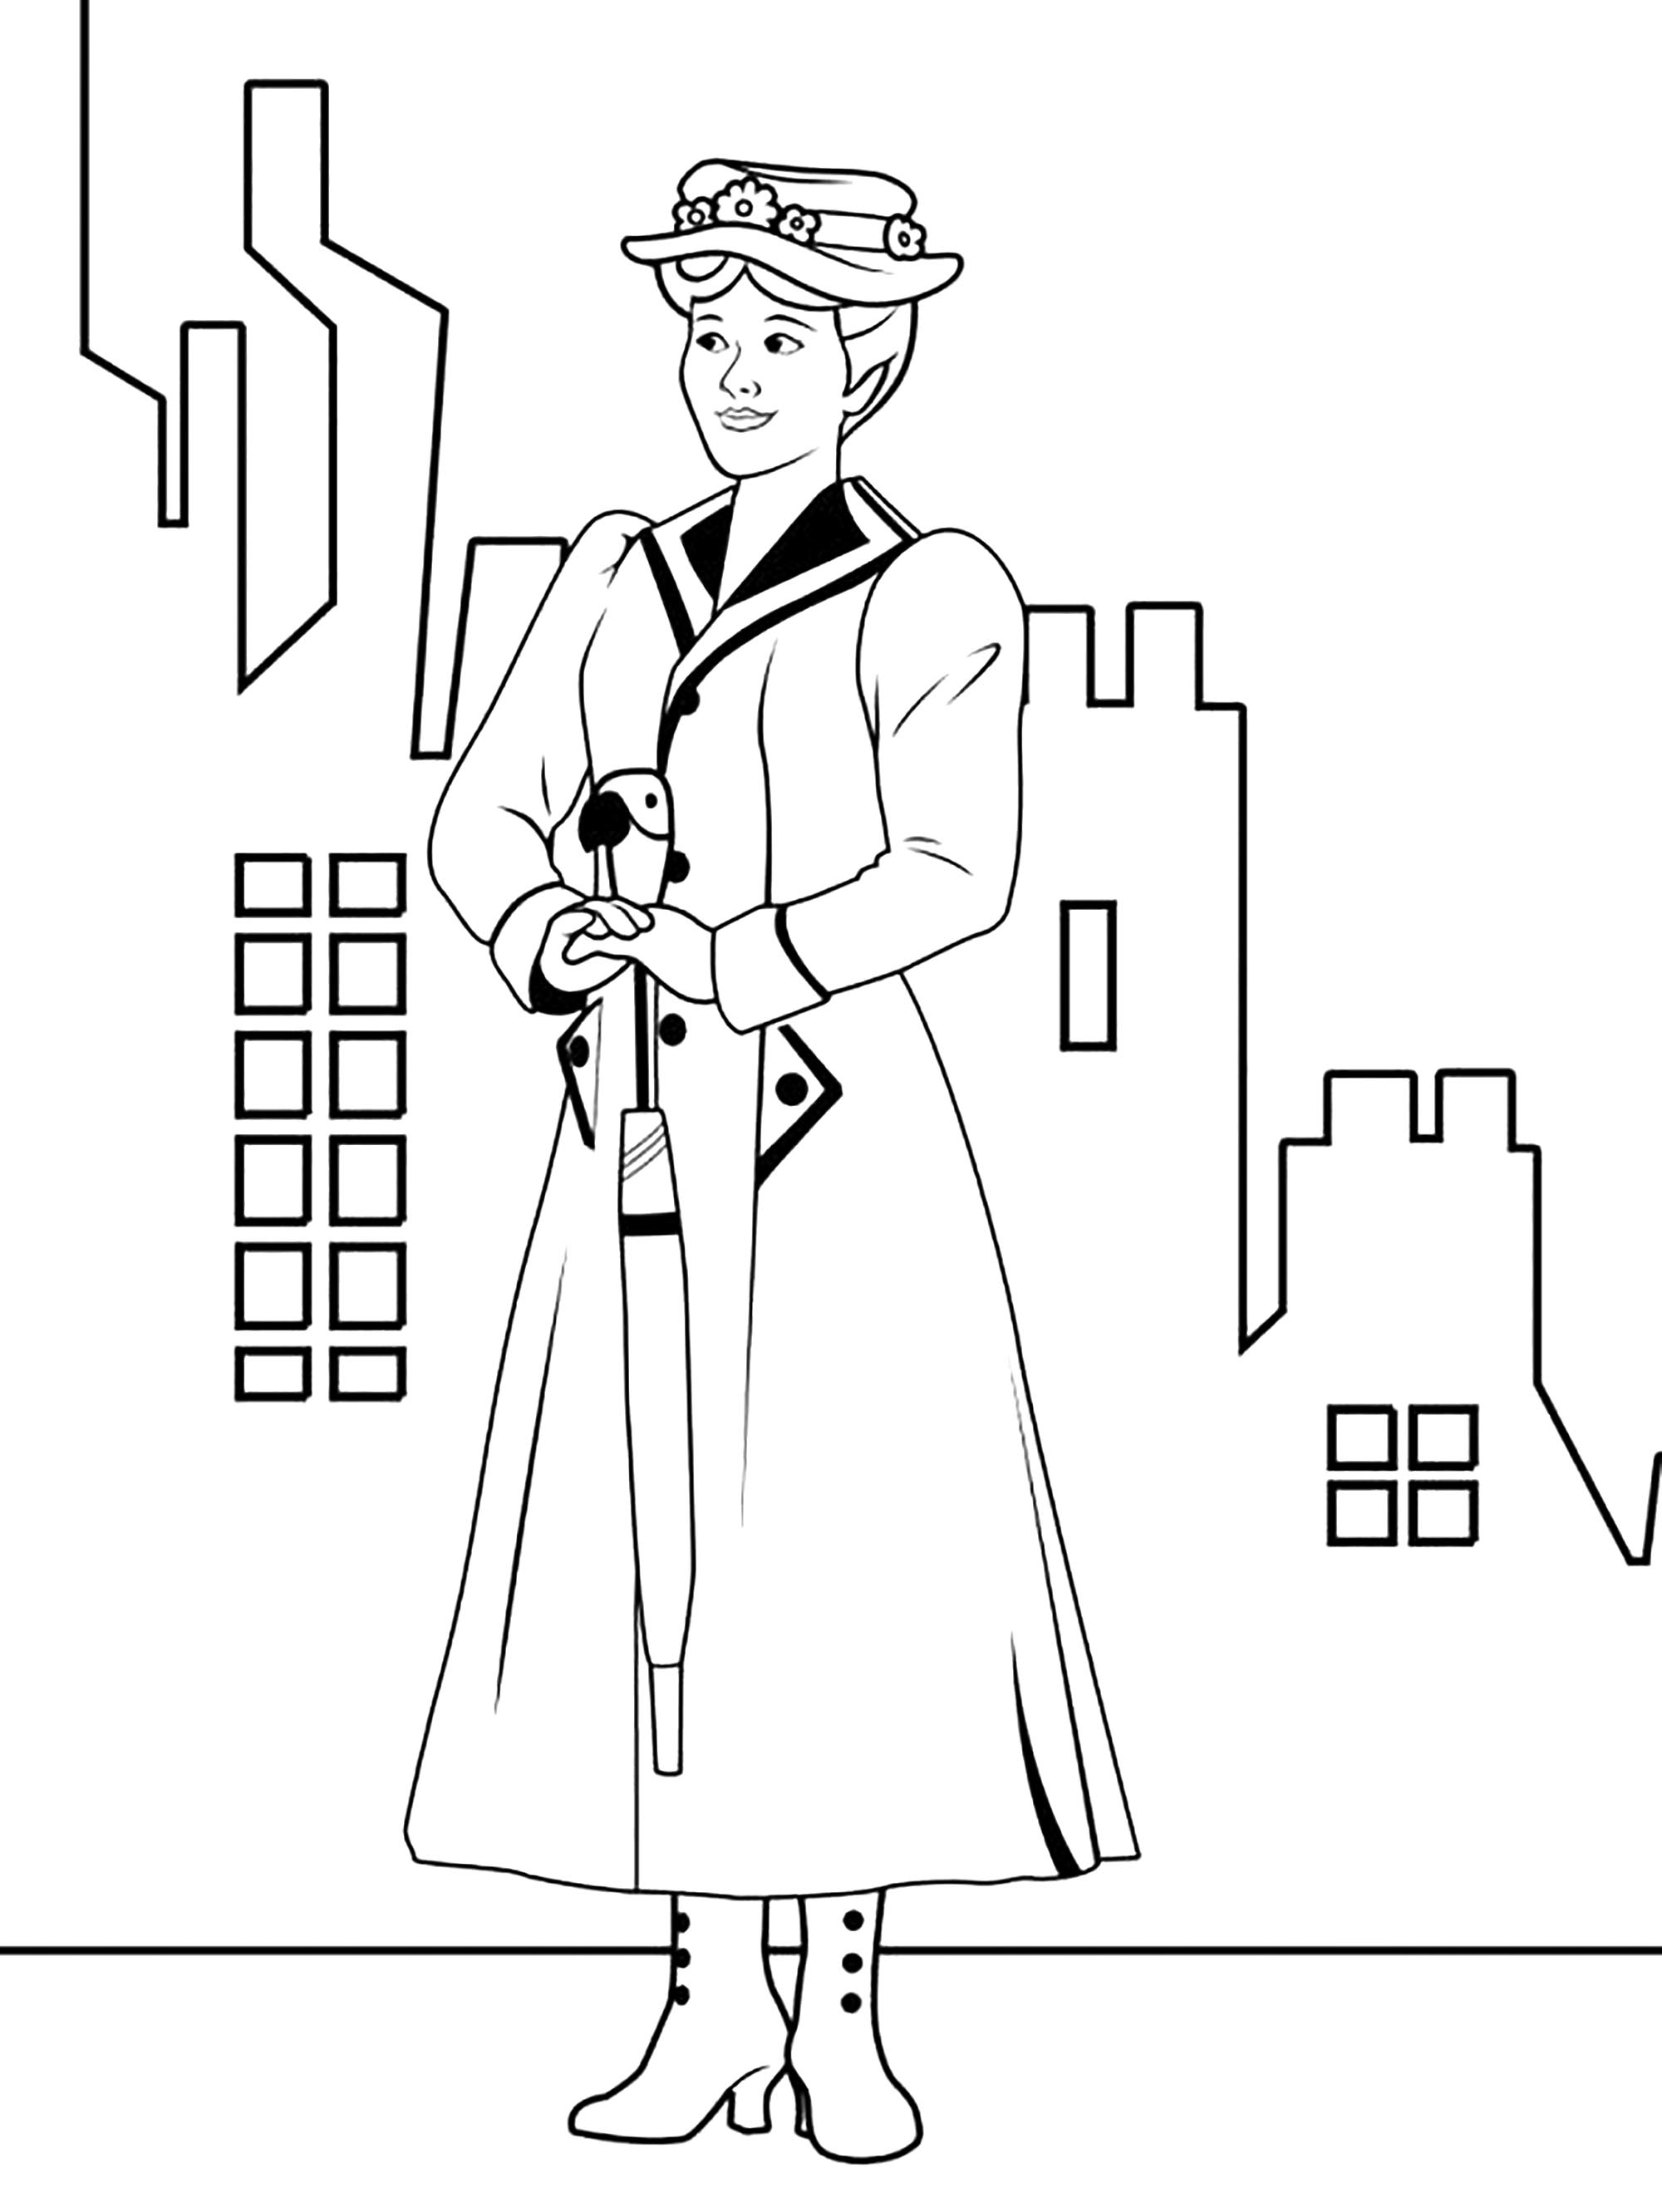 Funny Mary Poppins coloring page